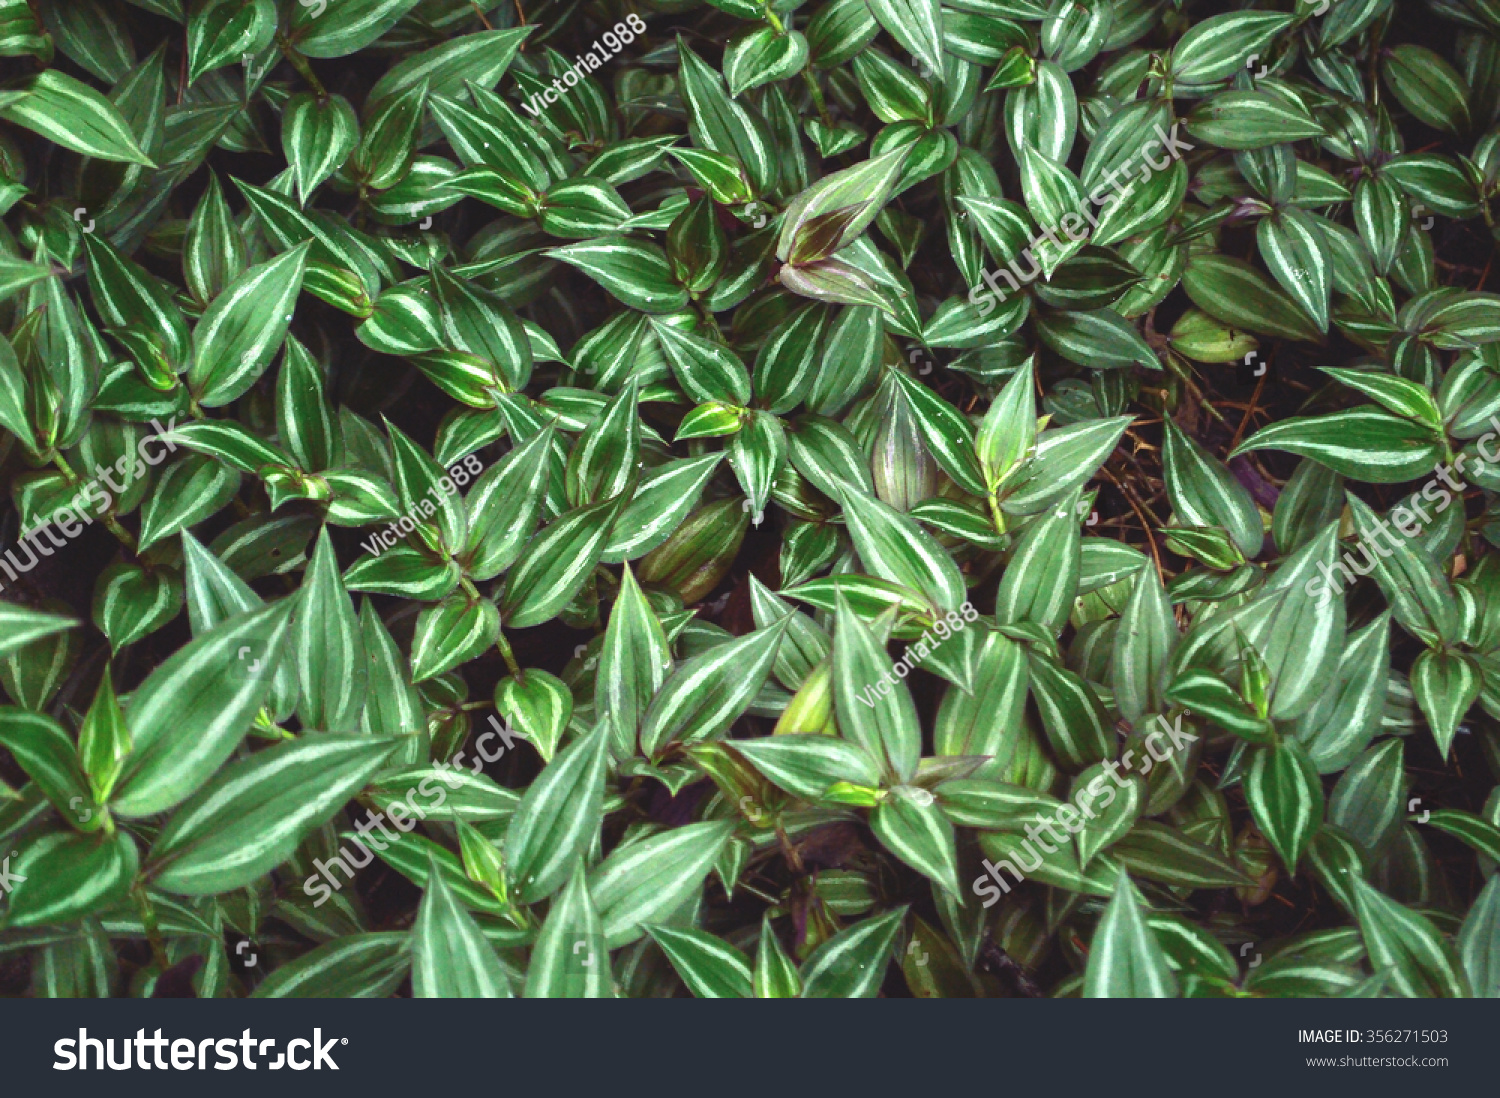 Lush foliage of wandering jew plant scientific name tradescantia zebrina a species of - Wandering jew plant name ...